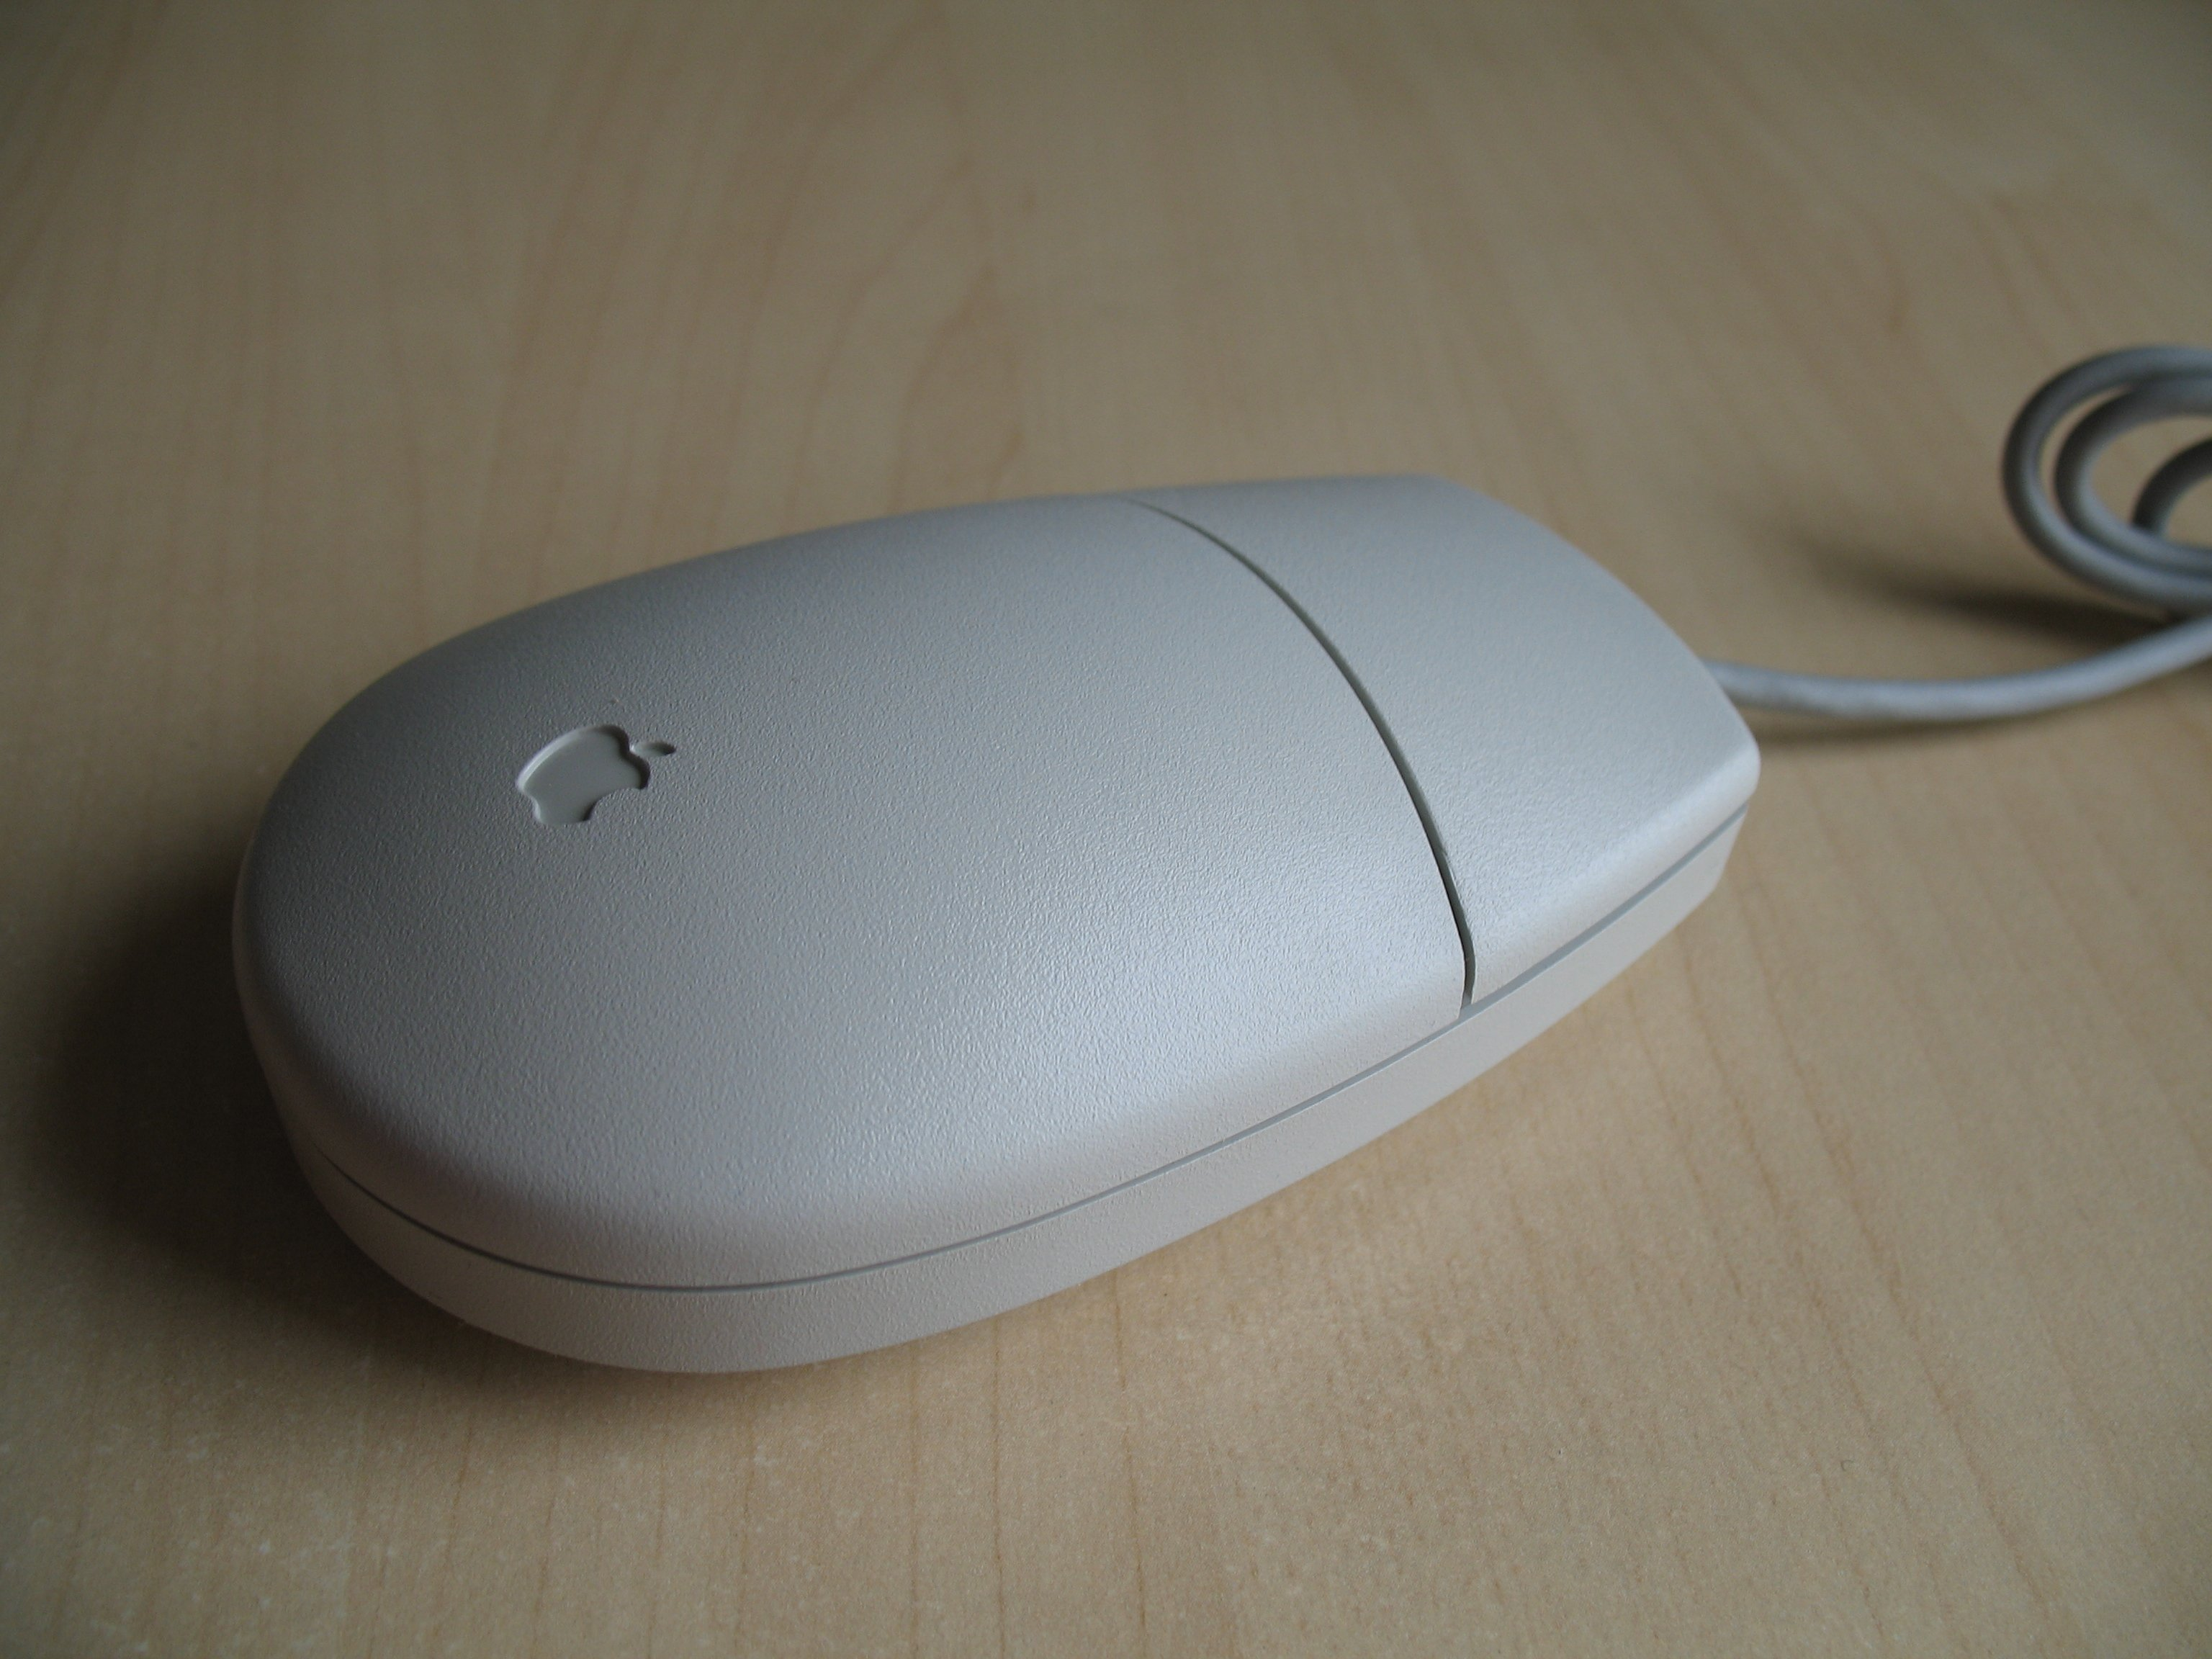 Mouse button - Wikipedia